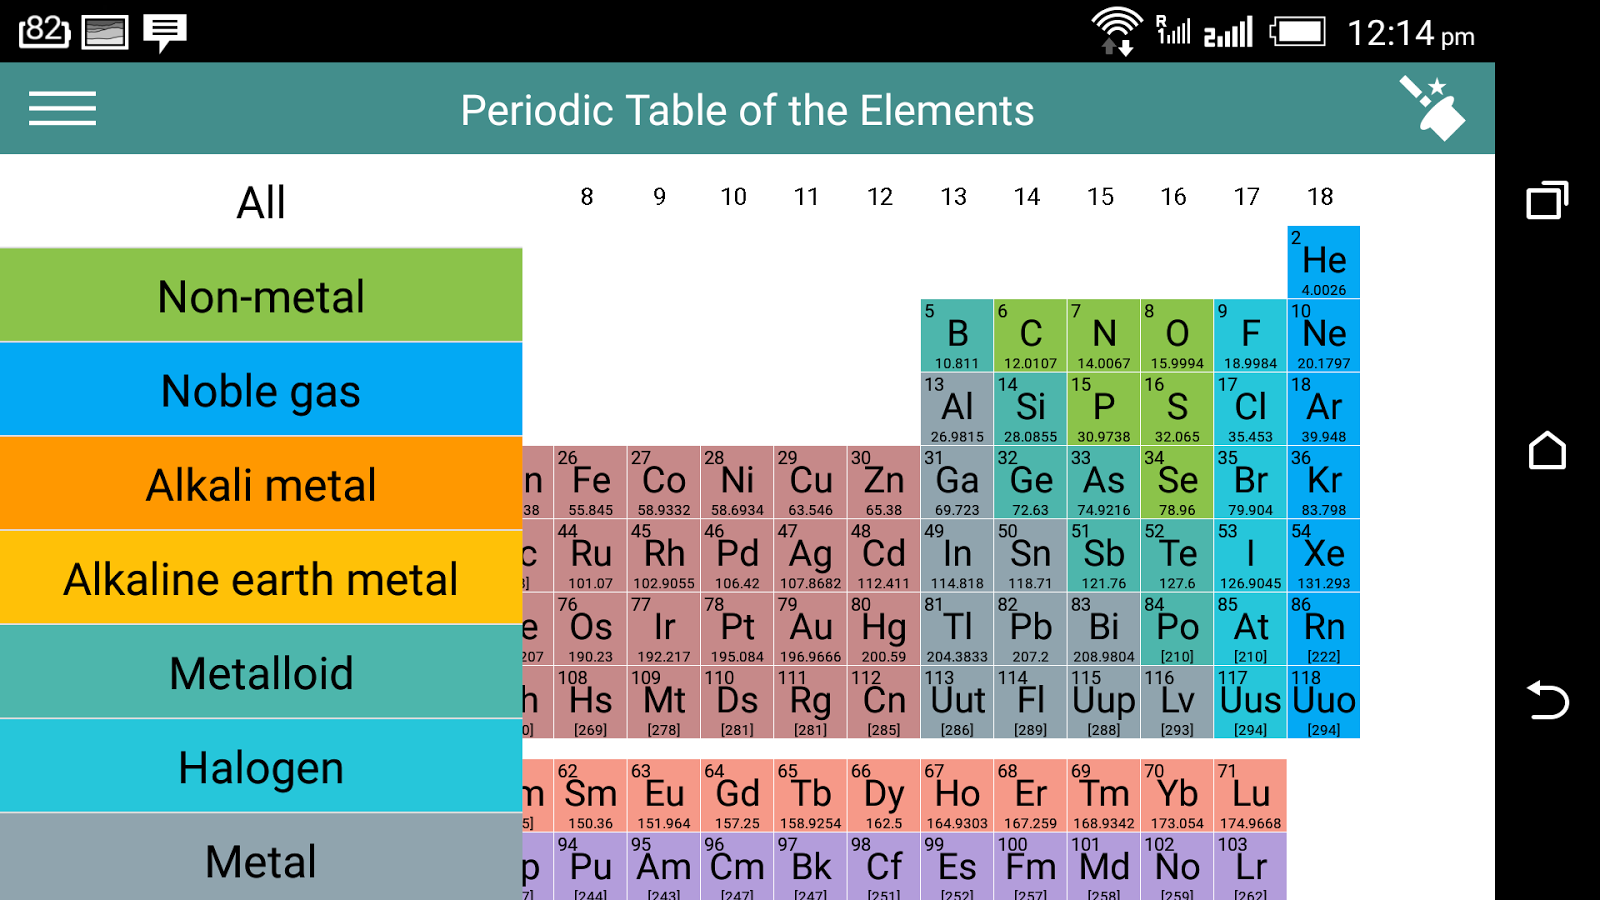 Periodic table elements 15 apk communicating with stakeholders download android education apps czqagb9foig5 dxb6mwj43qm2jplbalbczhcppp6sy garowbt4o8fkn6vxzamjtsejvh900 periodictable periodic table elements 15 apk gamestrikefo Image collections